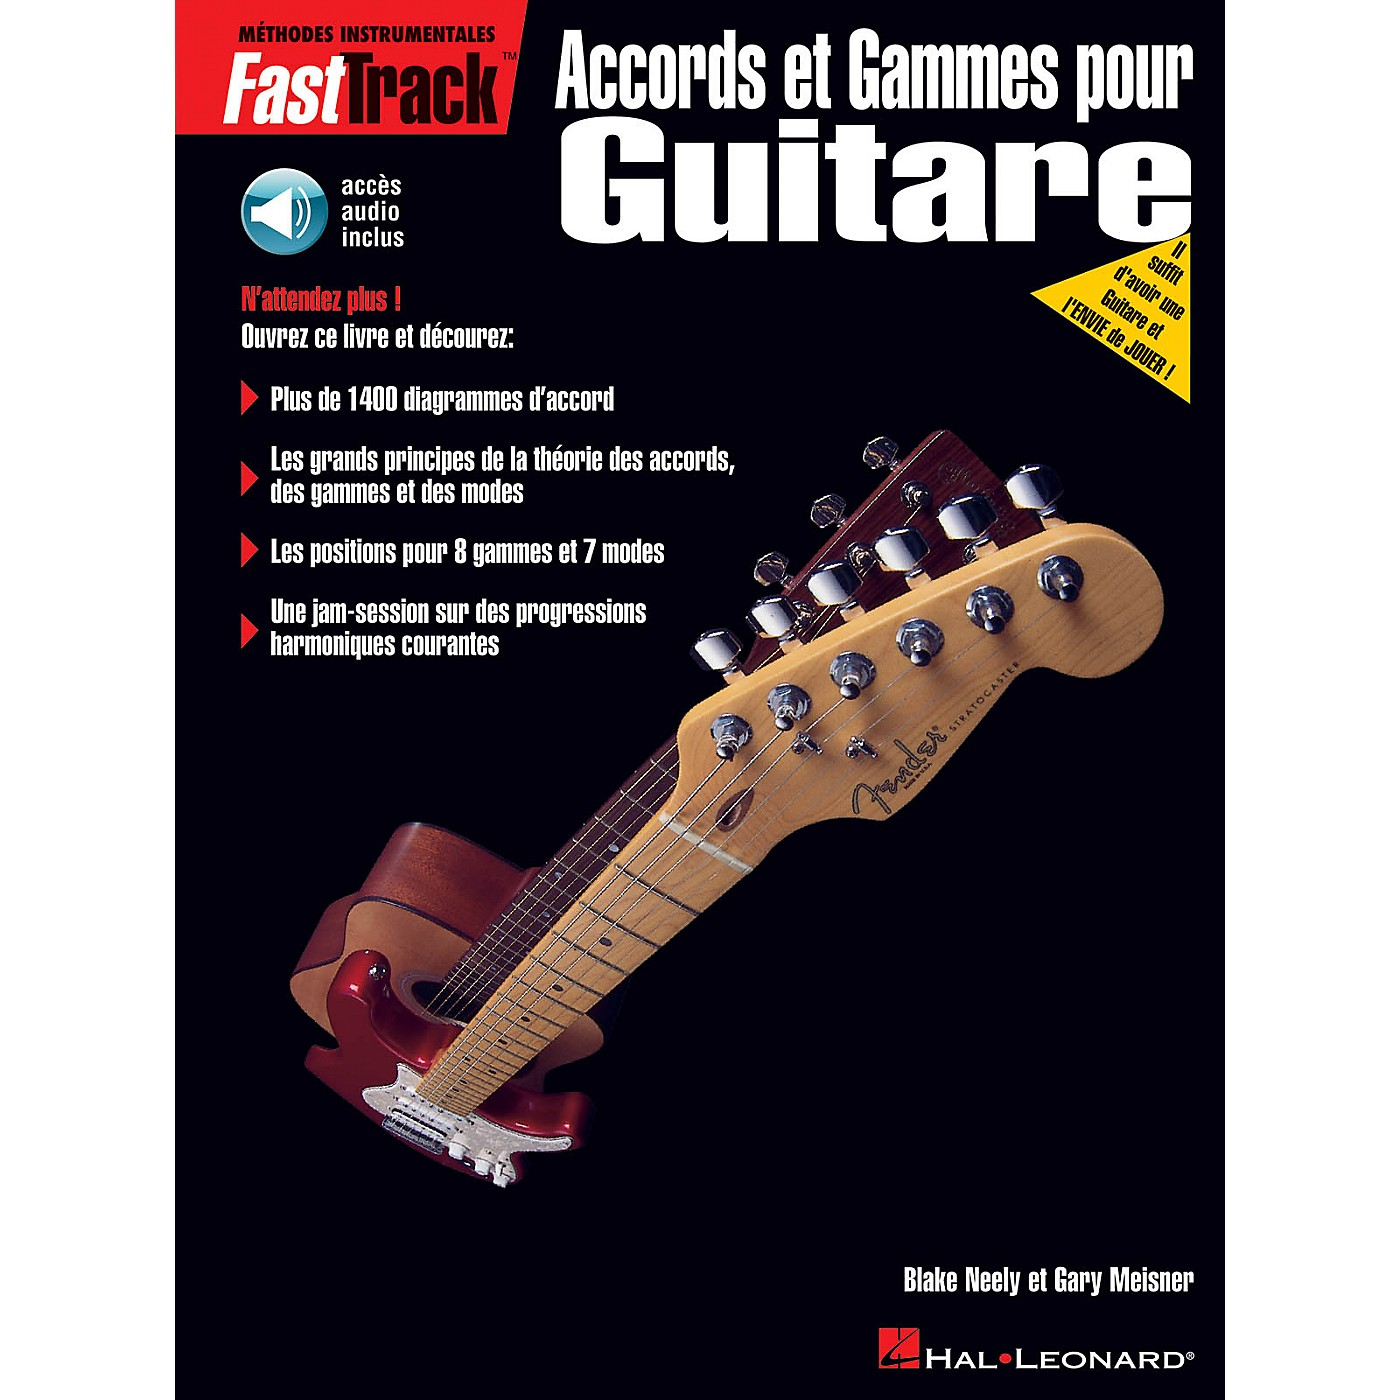 Hal Leonard FastTrack Guitar Chords & Scales - French Edition BK/CD by Blake Neely thumbnail